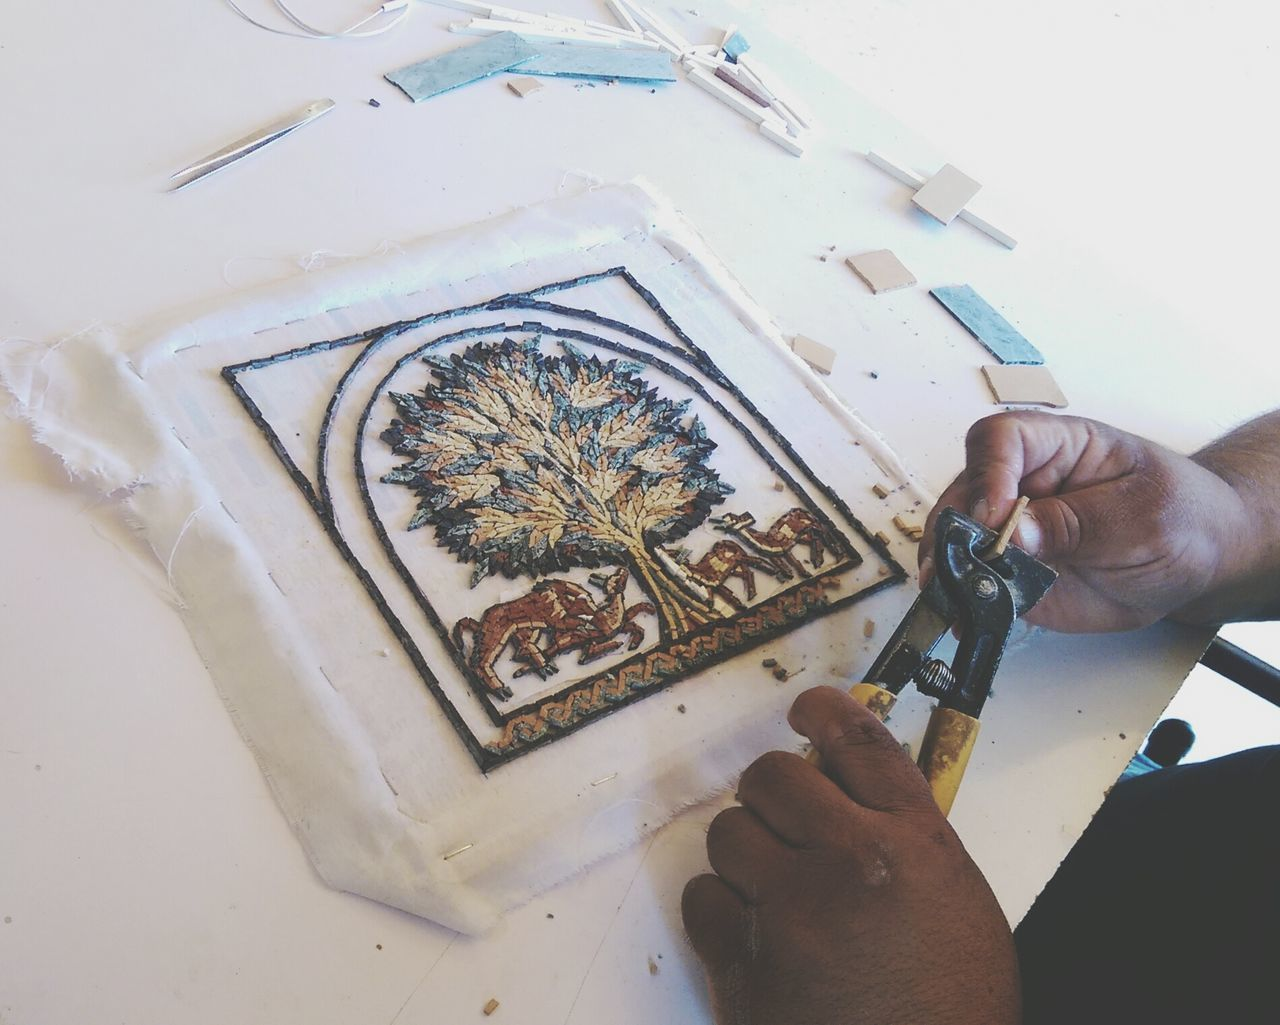 Mosaic Tiles Unfinished_art Mosaicartist Tree Of Life Working Hard Work In Progress Jordan Madaba Taking Photos Eye4photography  EyeEm Gallery